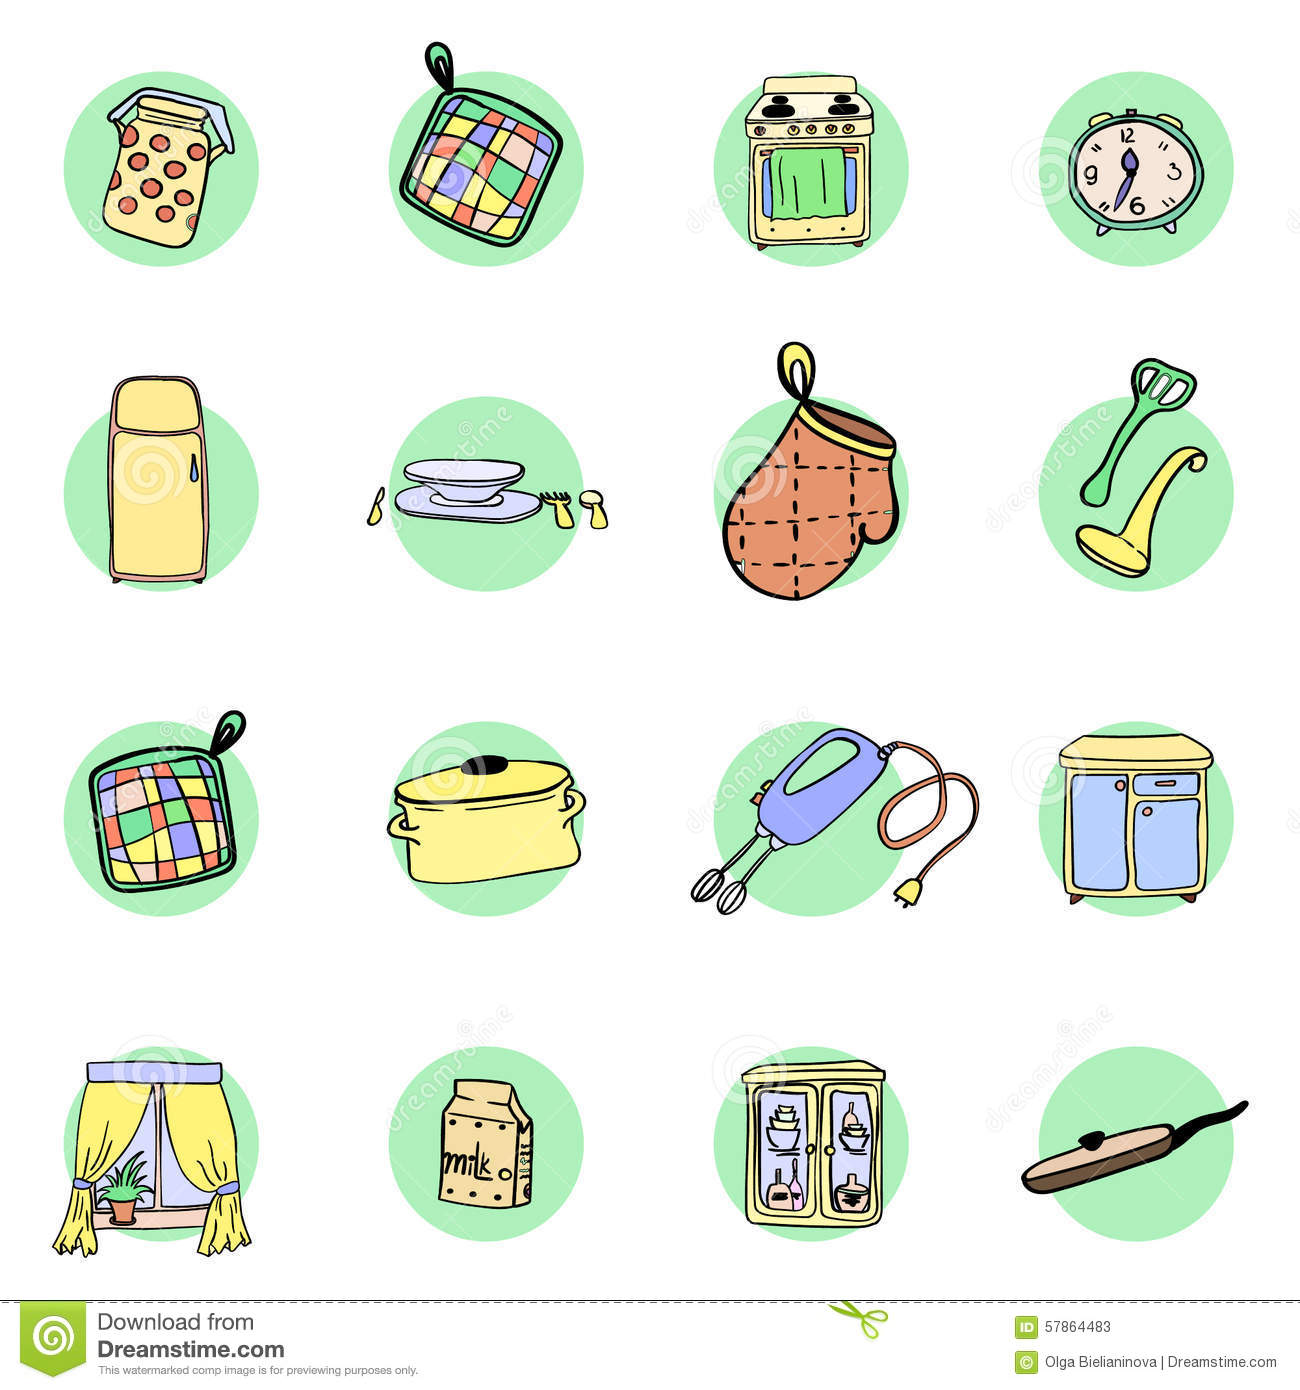 kitchen utensils storage cabinet with Stock Illustration Kitchen Utensils Cookware Hand Drawn Icons Set Cooking Tools Kitchenware Equipment Cartoon Design Elements Image57864483 on Simple Ideas To Organize Your Kitchen together with Small Kitchen Storage Ideas For Your Home besides Kitchen Organization Tips likewise Kitchen Cabi  Organization as well Old World Kitchen Designs.